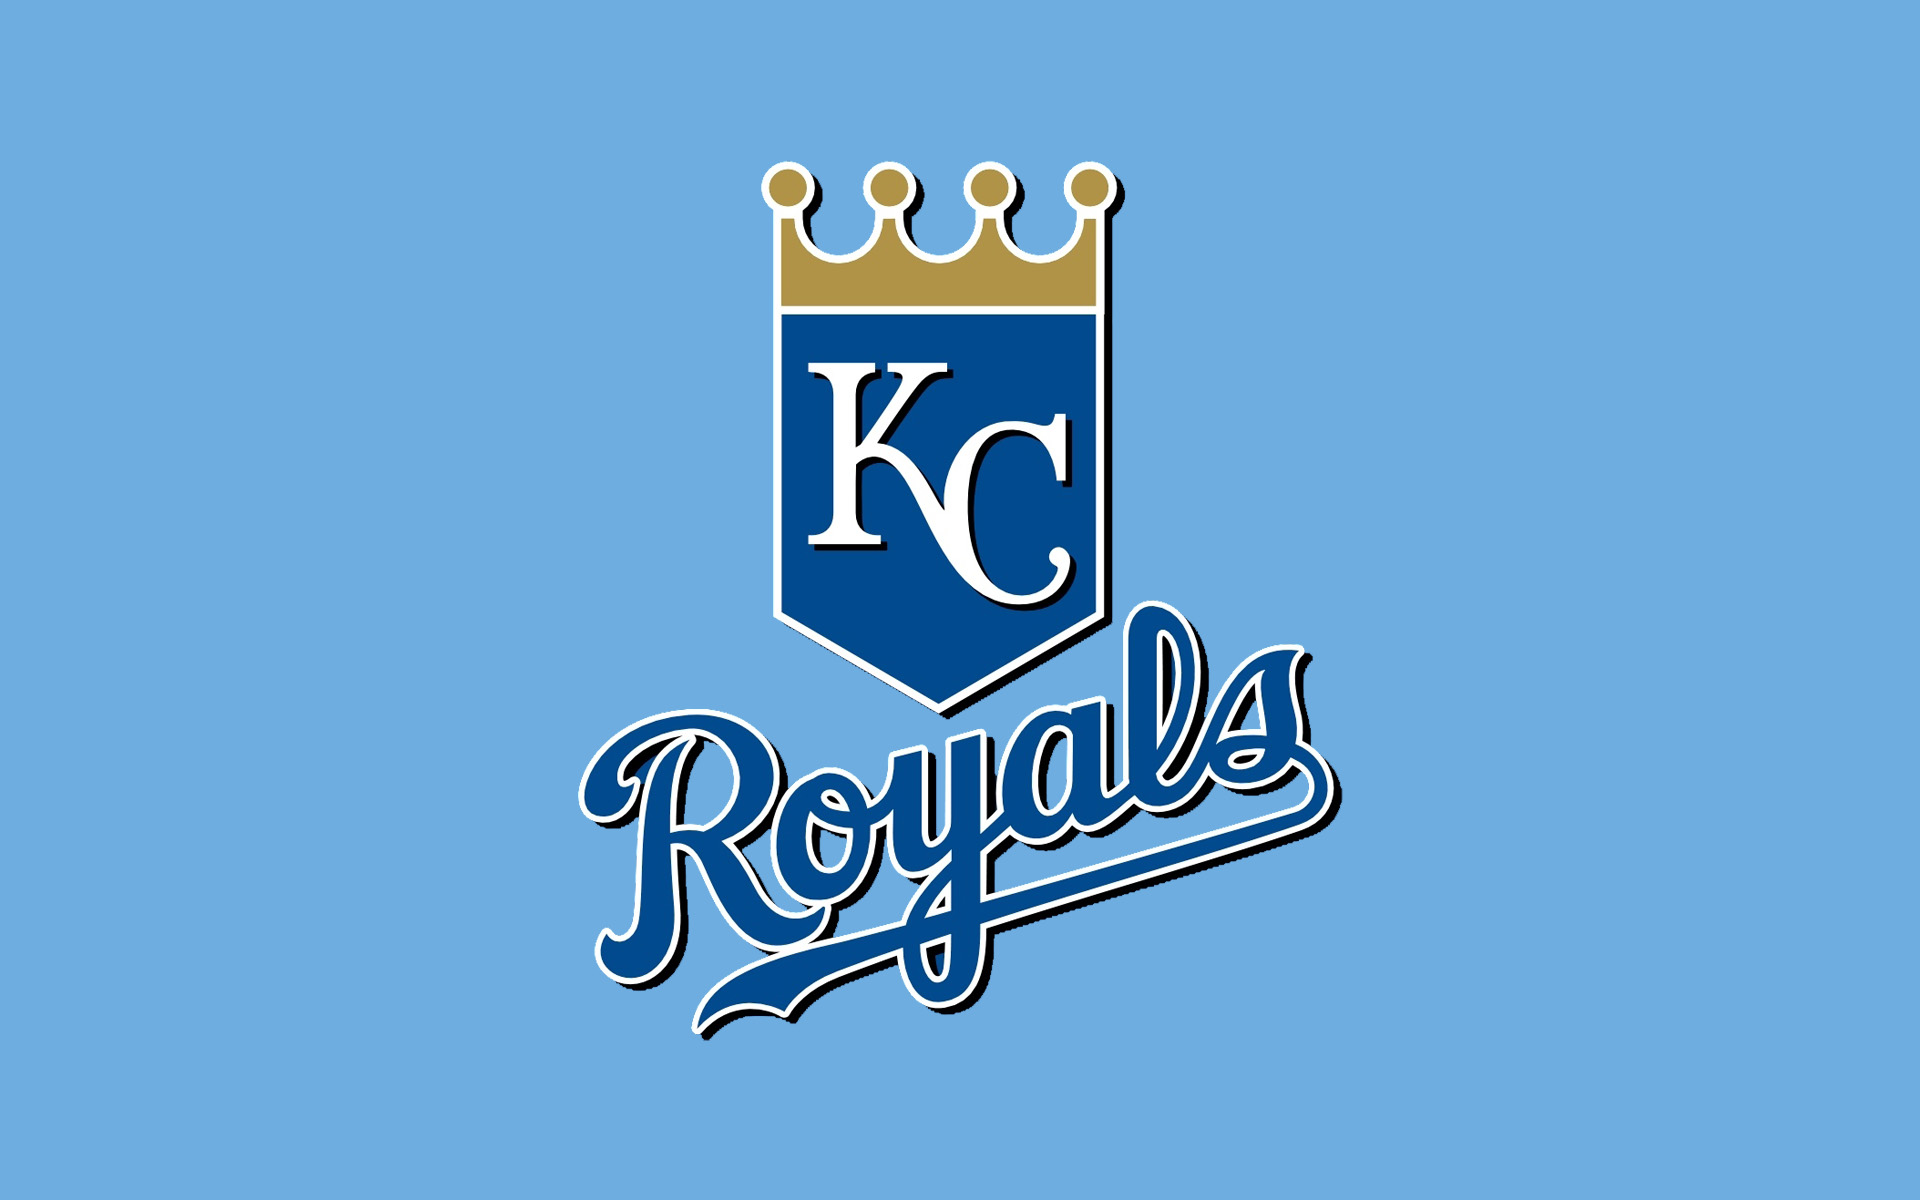 kc royals wallpaper download